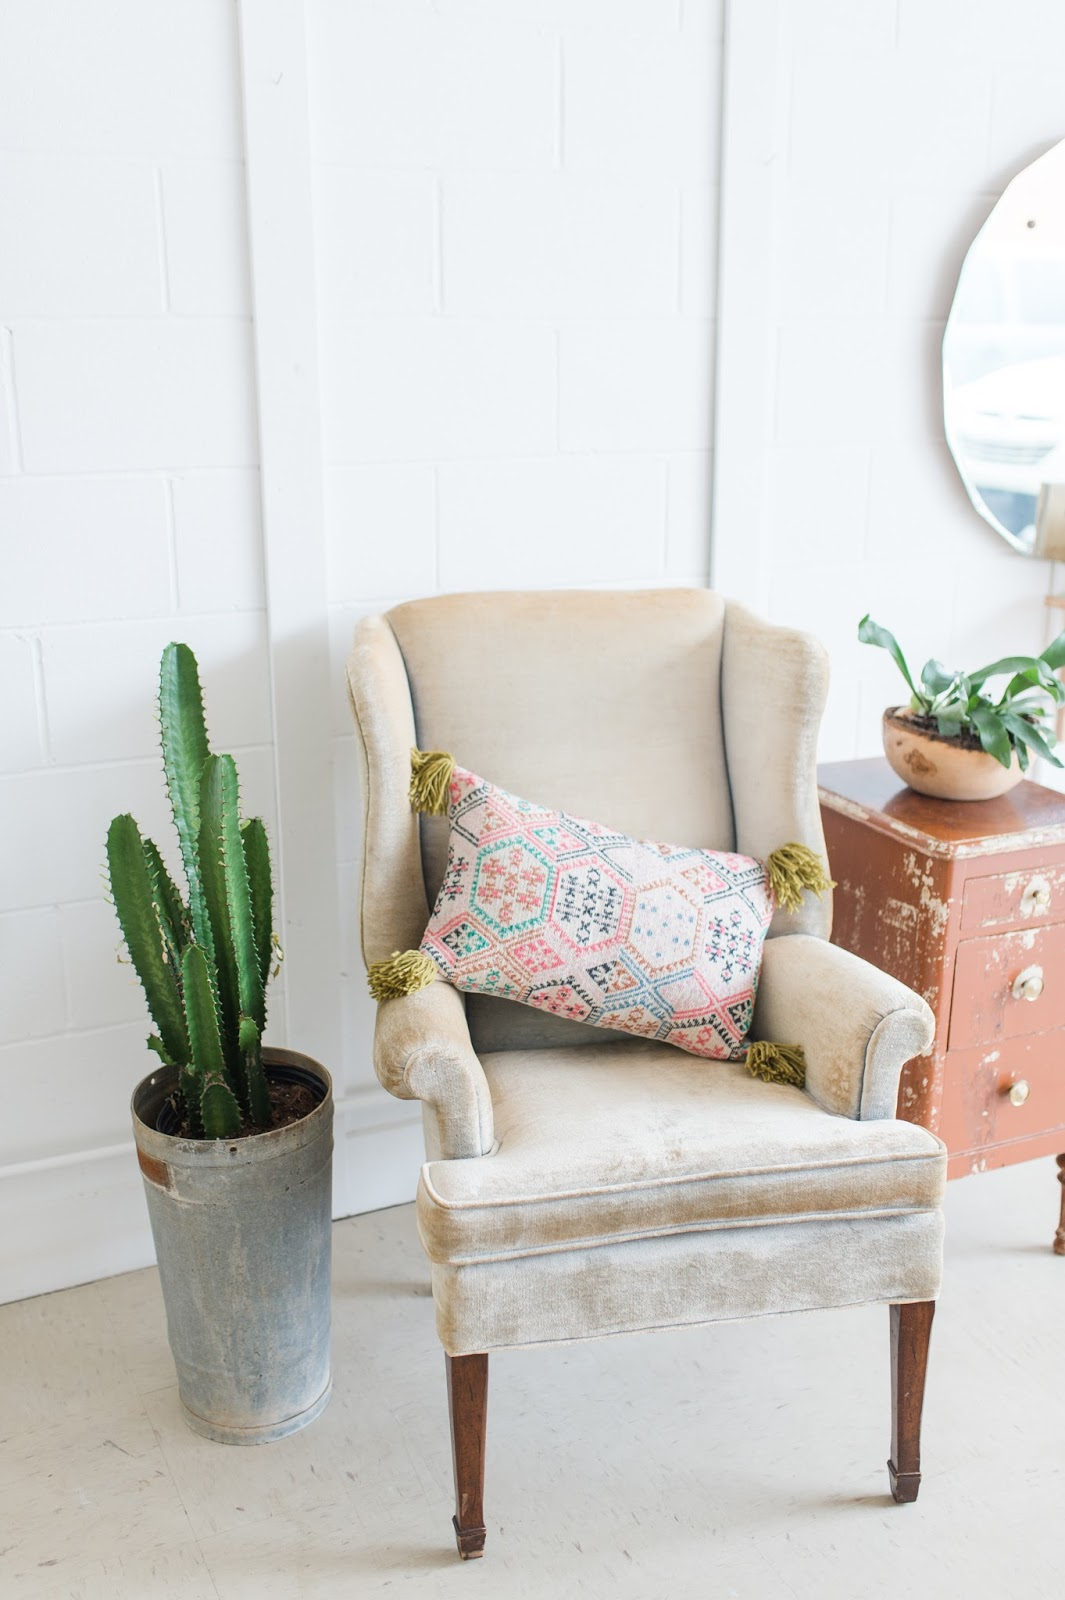 Make an Anthropologie-Inspired Kilim Pillow for Under $5 | LINDSEY ...